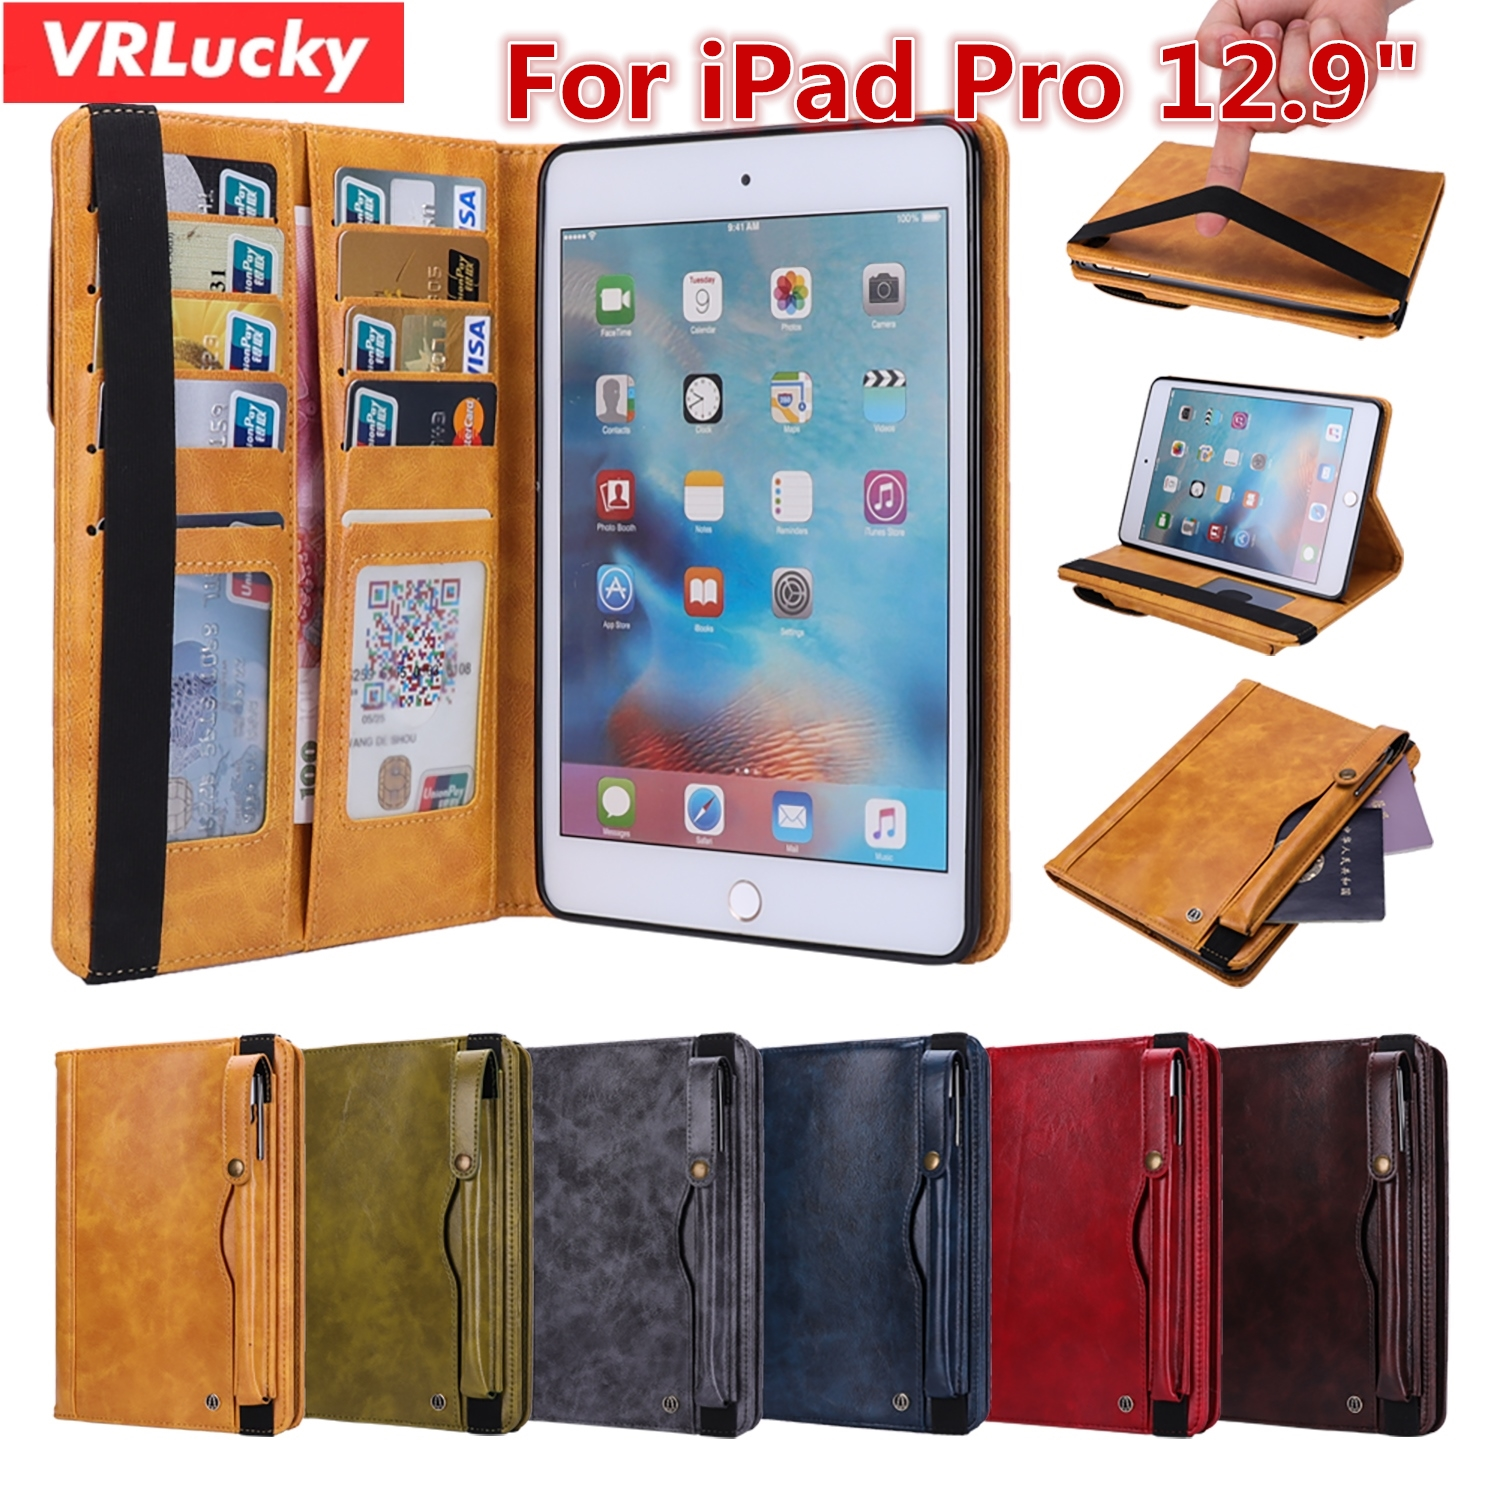 VRLucky Luxury Business Style Flip Cover With Pencil Holder Card Slots Quality PU Leather Case For Apple iPad Pro 12.9 inch wkae crazy horse texture pu leather flip stand case with wallet card slots for iphone x